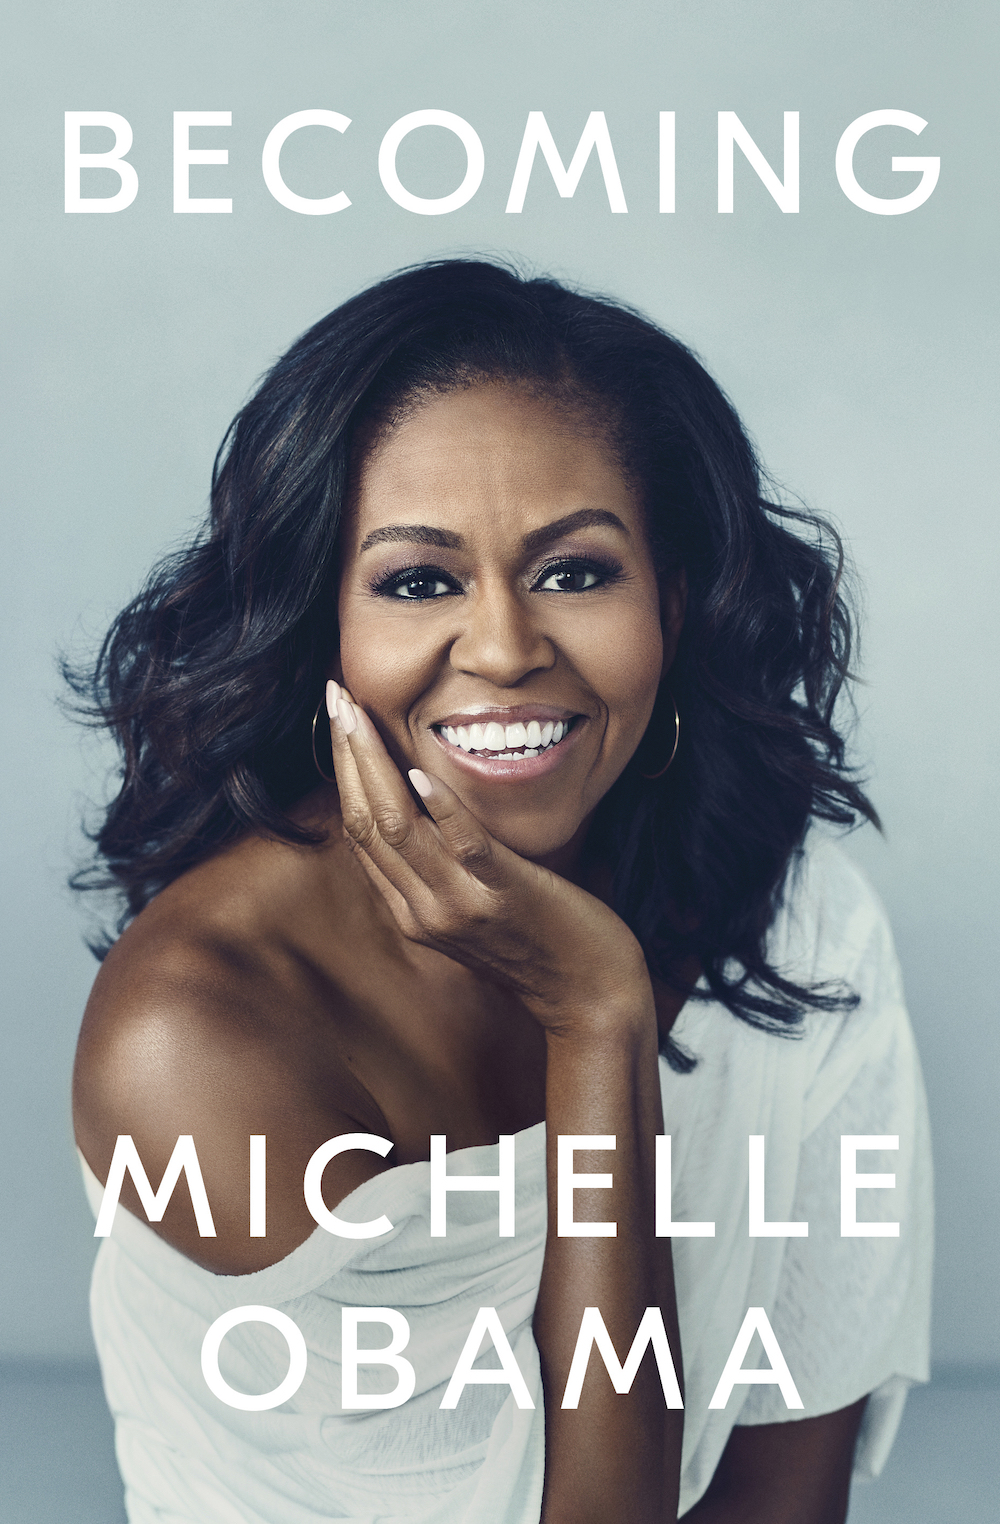 """Alex Spargo, Operations & Event Manager: """"I've just started reading Michelle Obama's autobiography, Becoming. I couldn't wait to start it, from what I've heard in reviews. She's such an impressive individual and I am learning so much about her perspective on the world."""" -"""